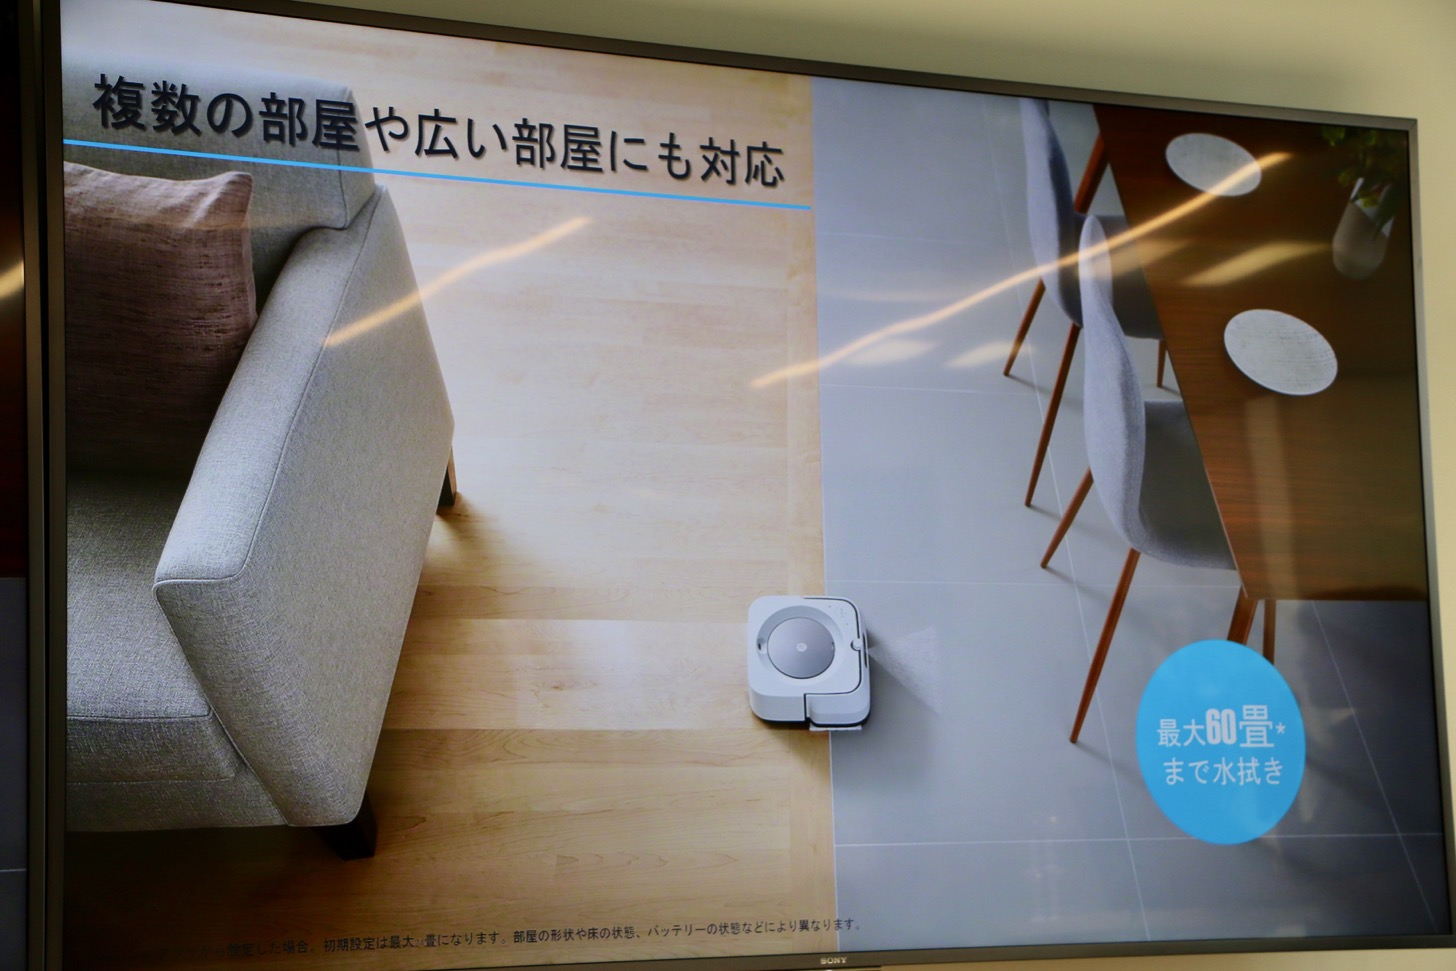 """Floor cleaning robot """"Blur budget m6"""" wipes water up to 60 tatami"""